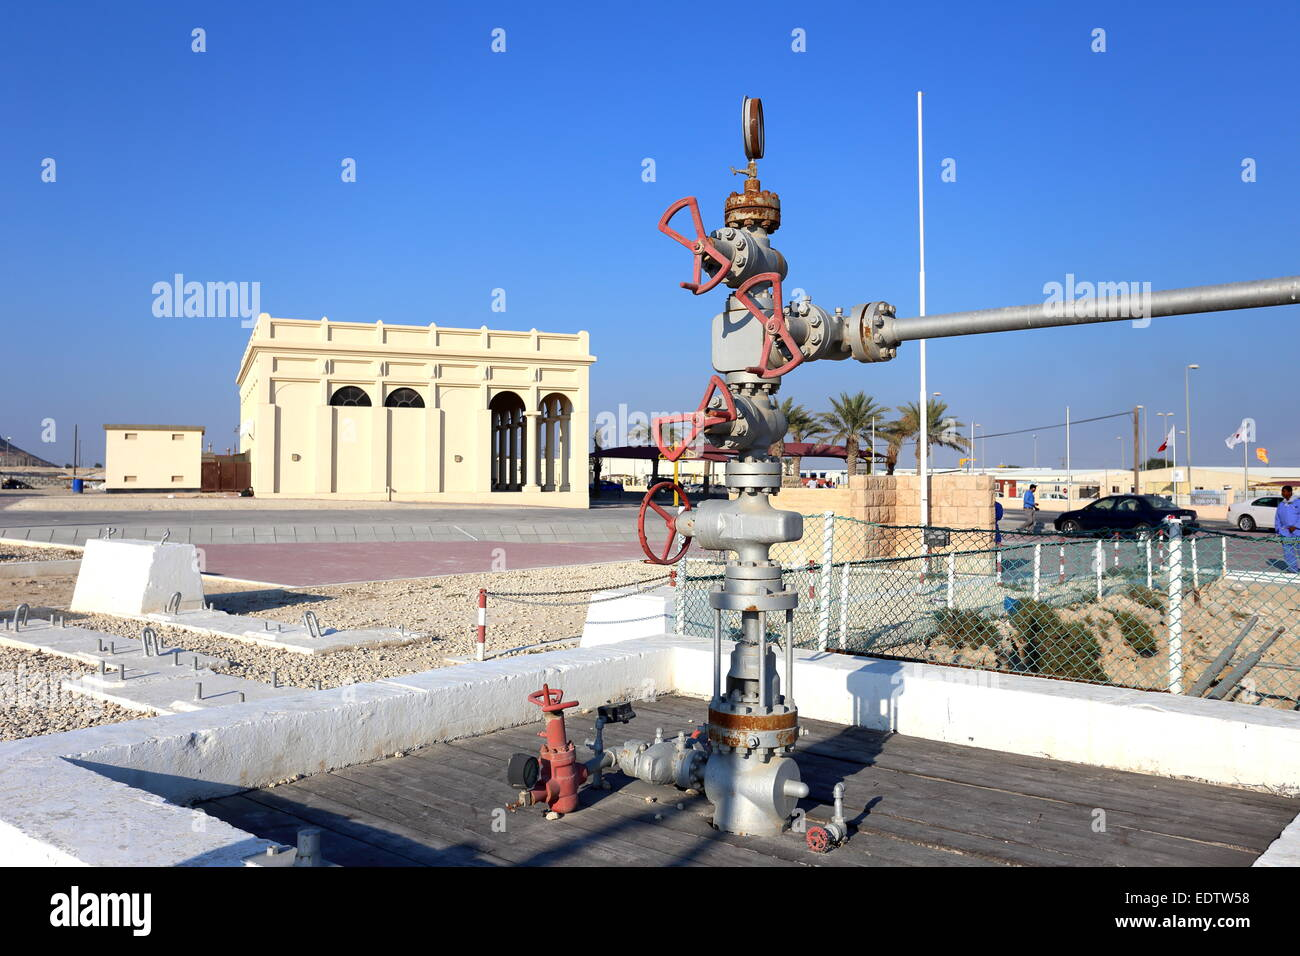 Oil Well Number 1 in the foreground with the Oil Museum in the background, Bahrain - Stock Image